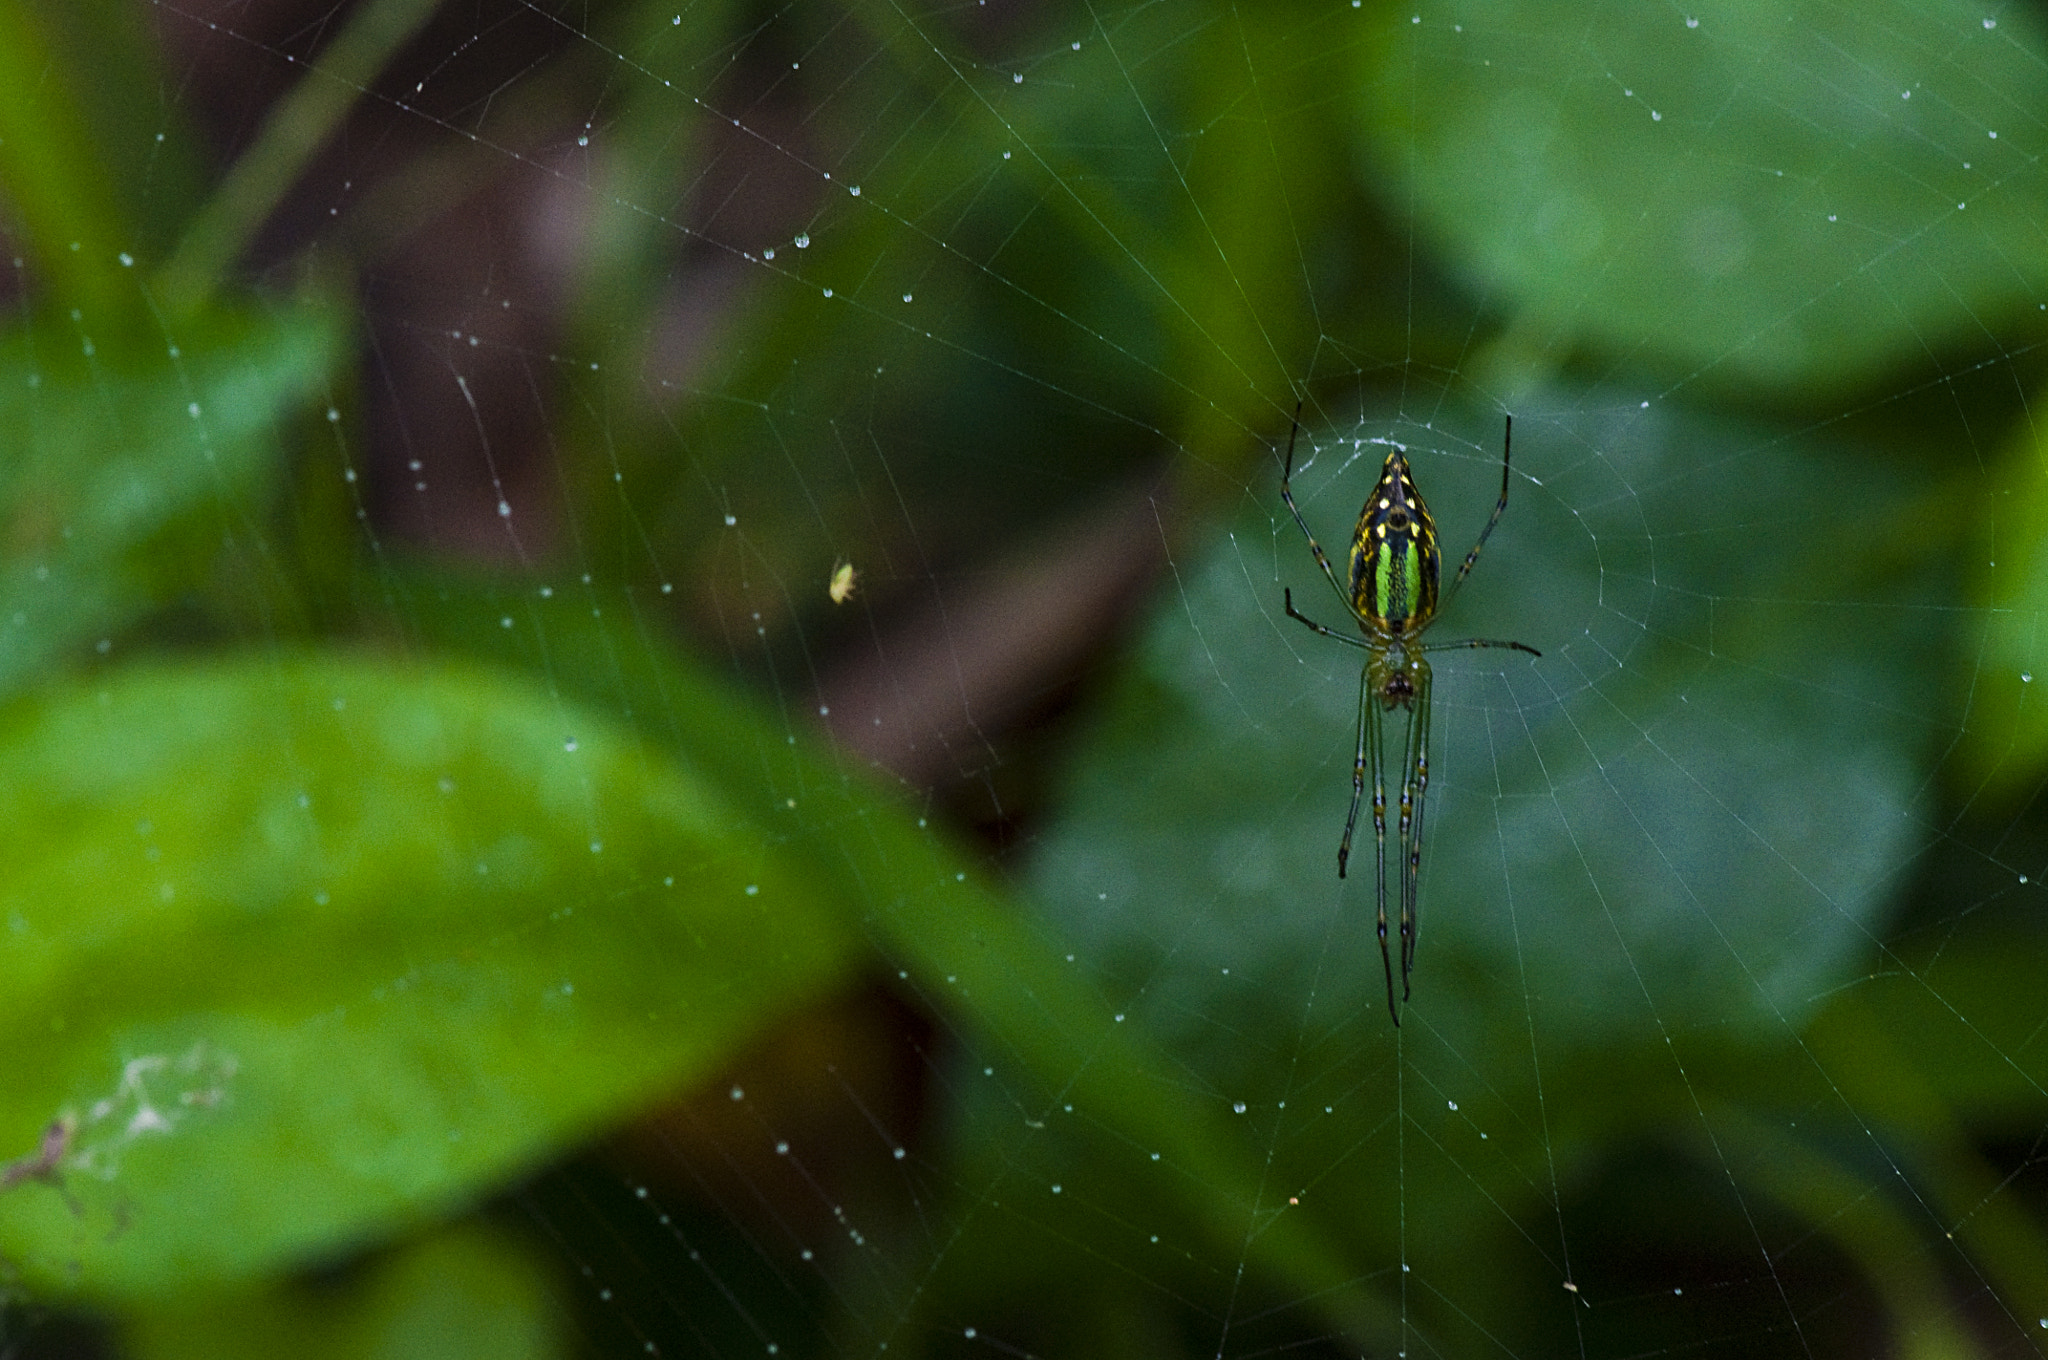 Photograph spider by Cesar Samiano on 500px